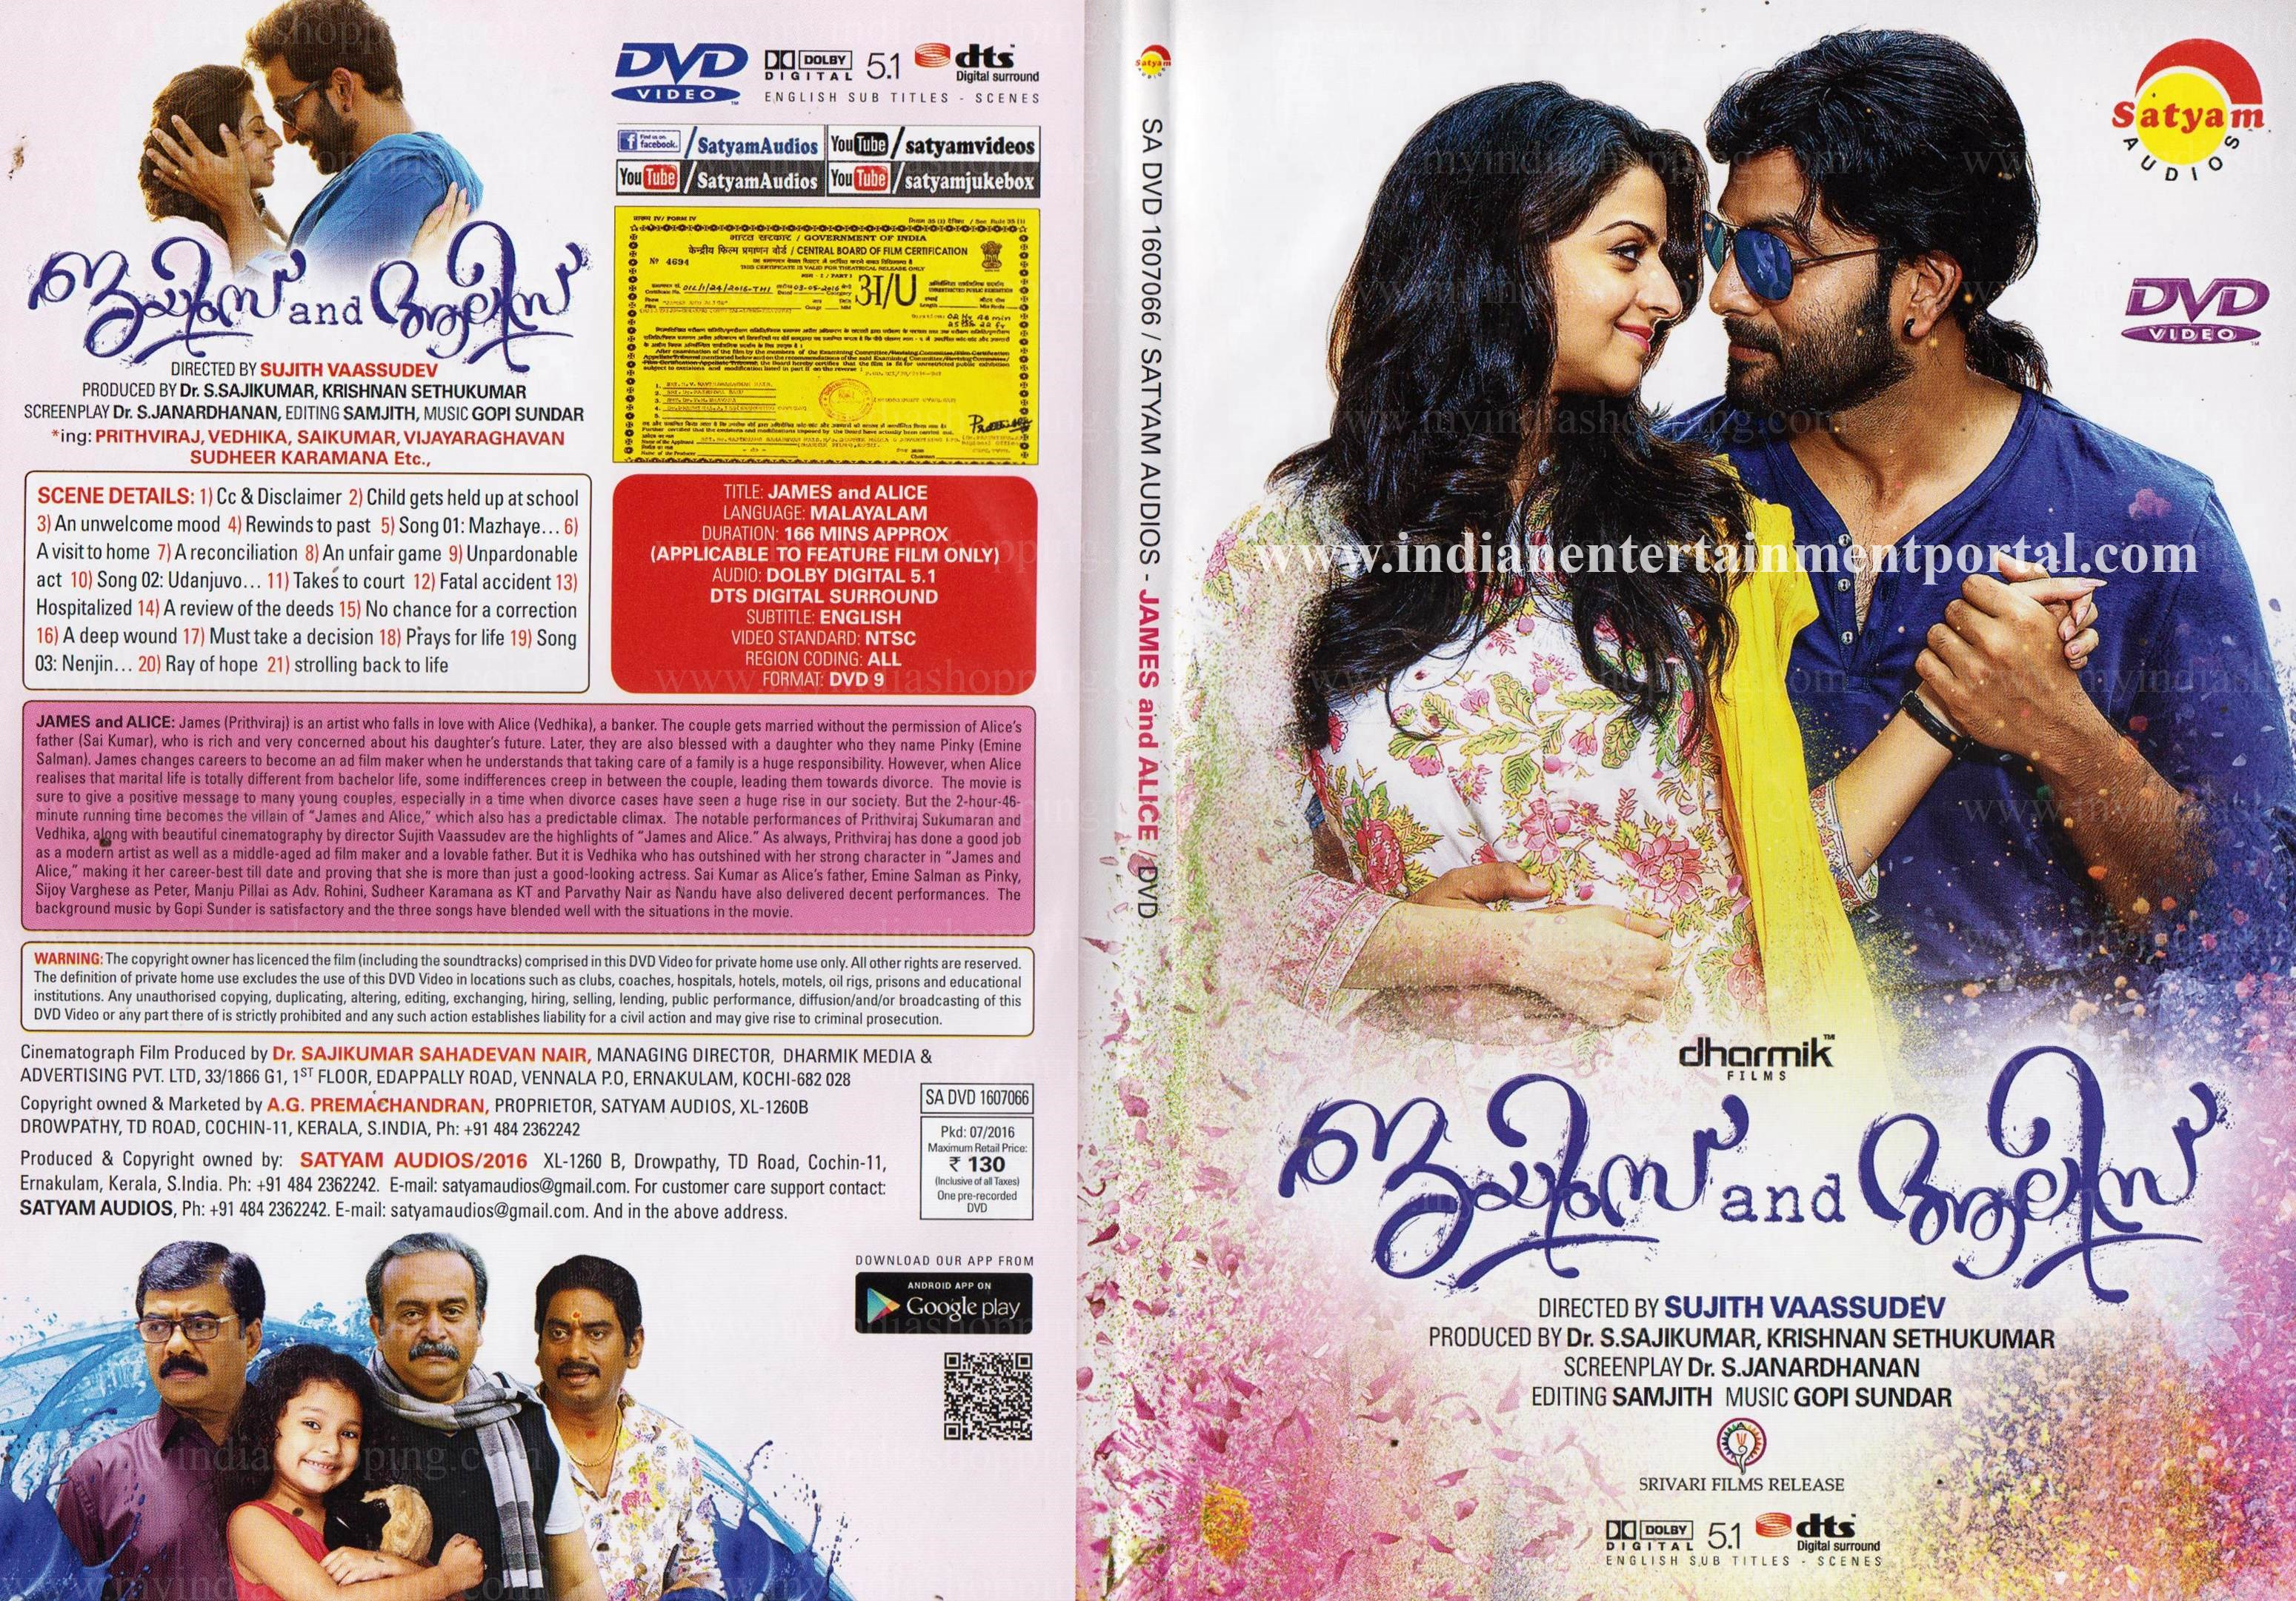 JAMES and ALICE DVD & VCD Released from SATYAM AUDIOS